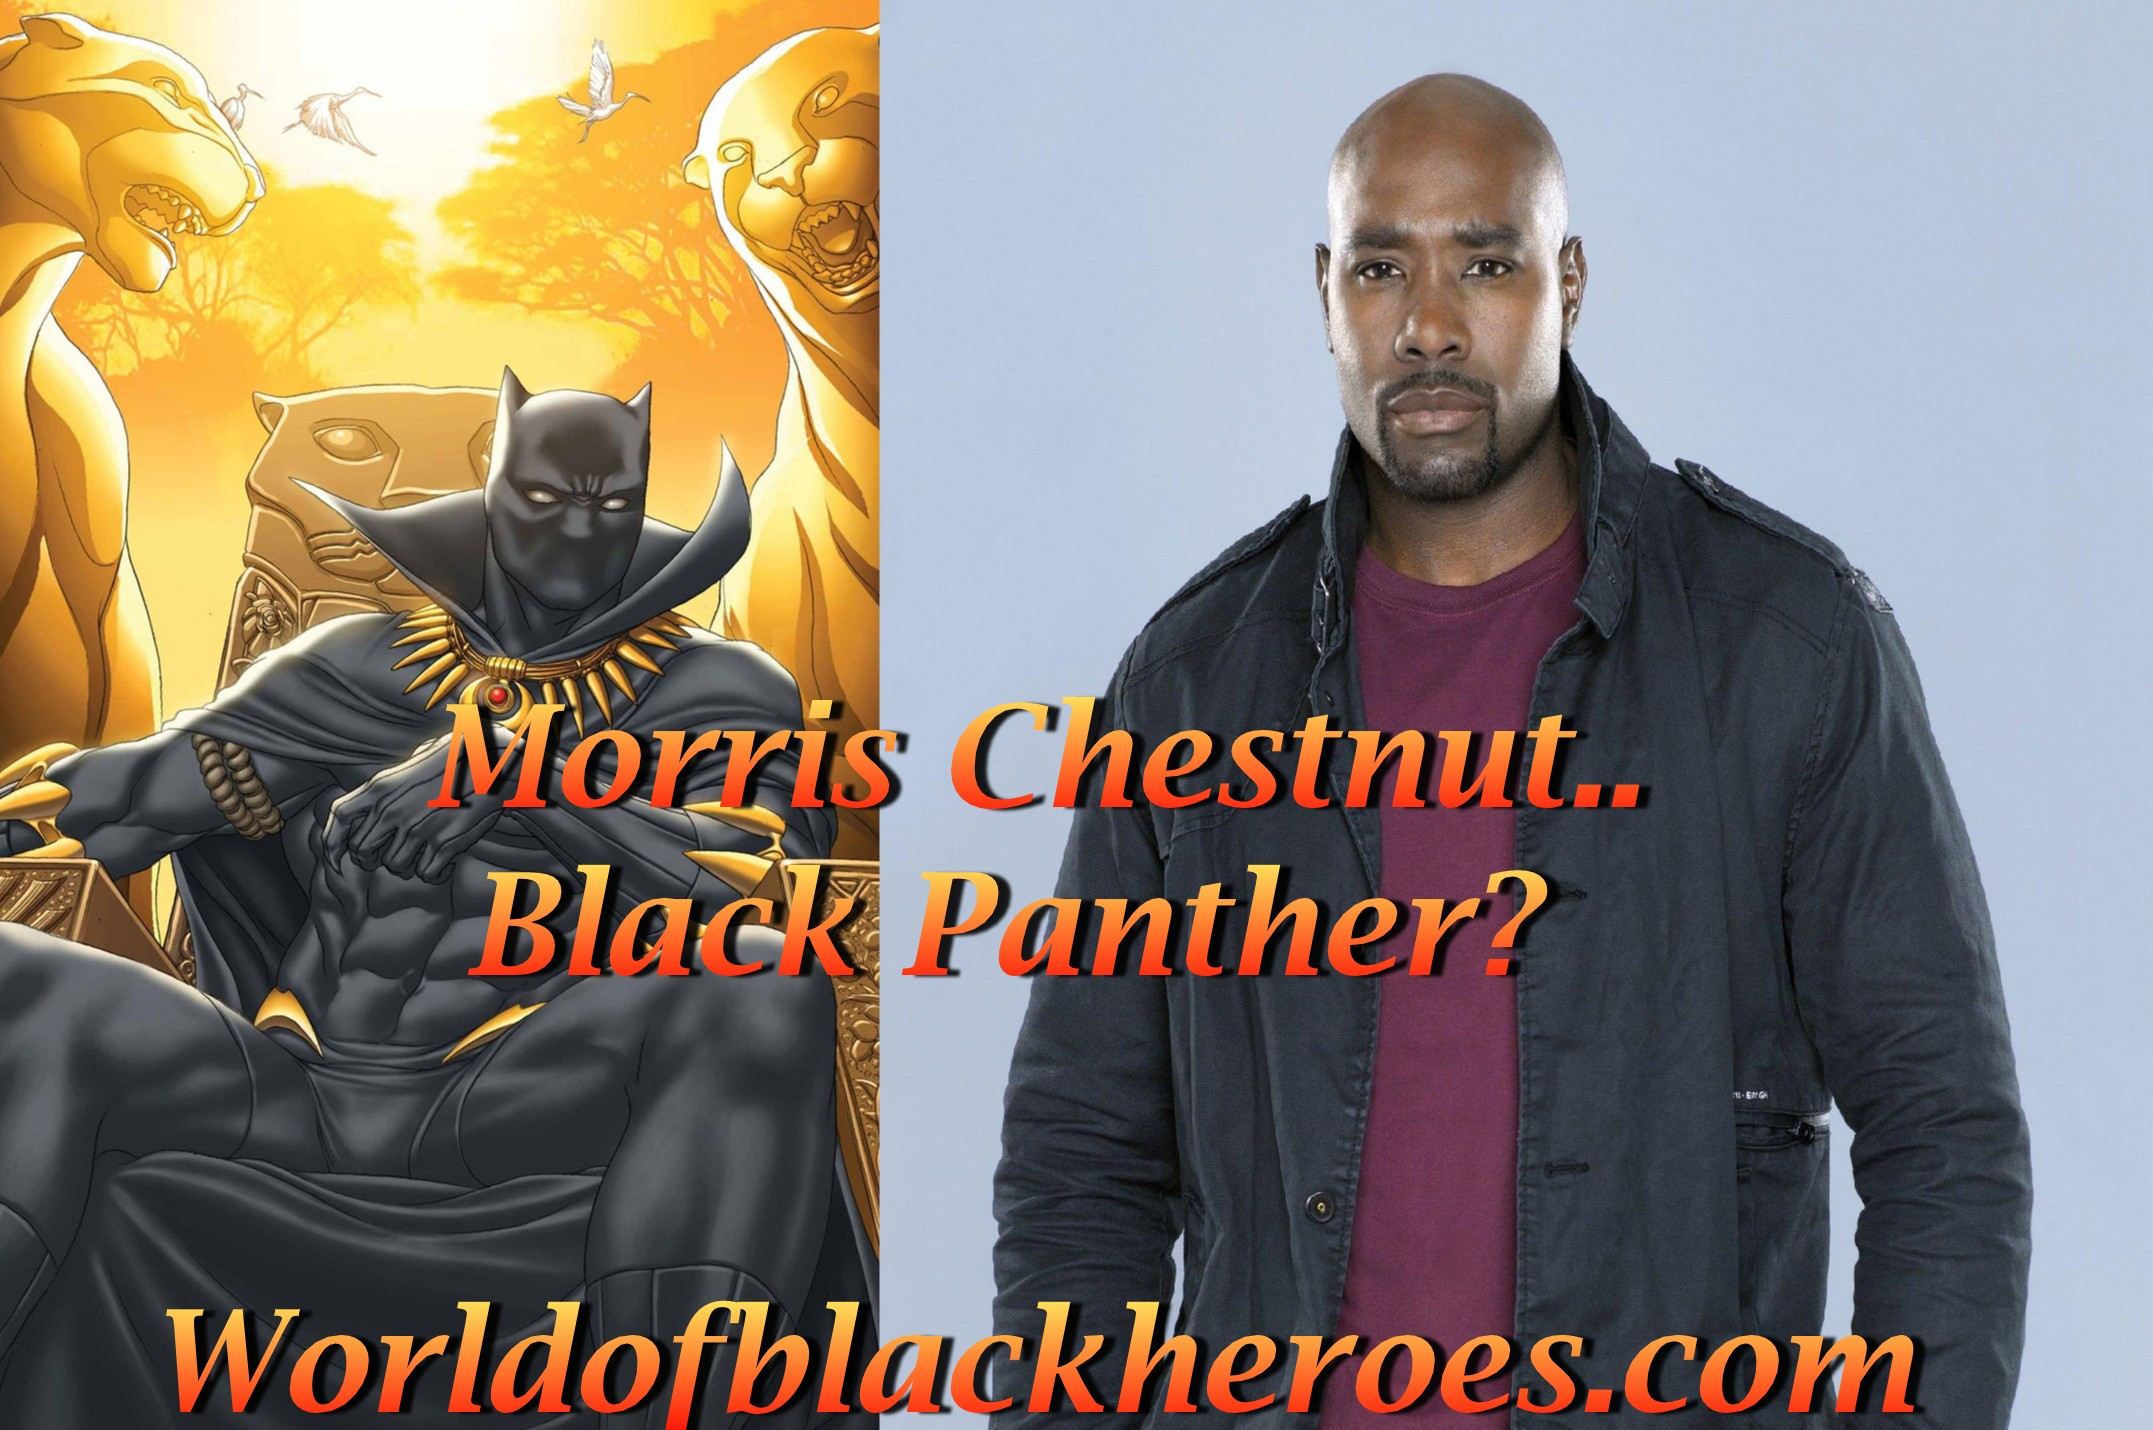 morris chestnut black panther